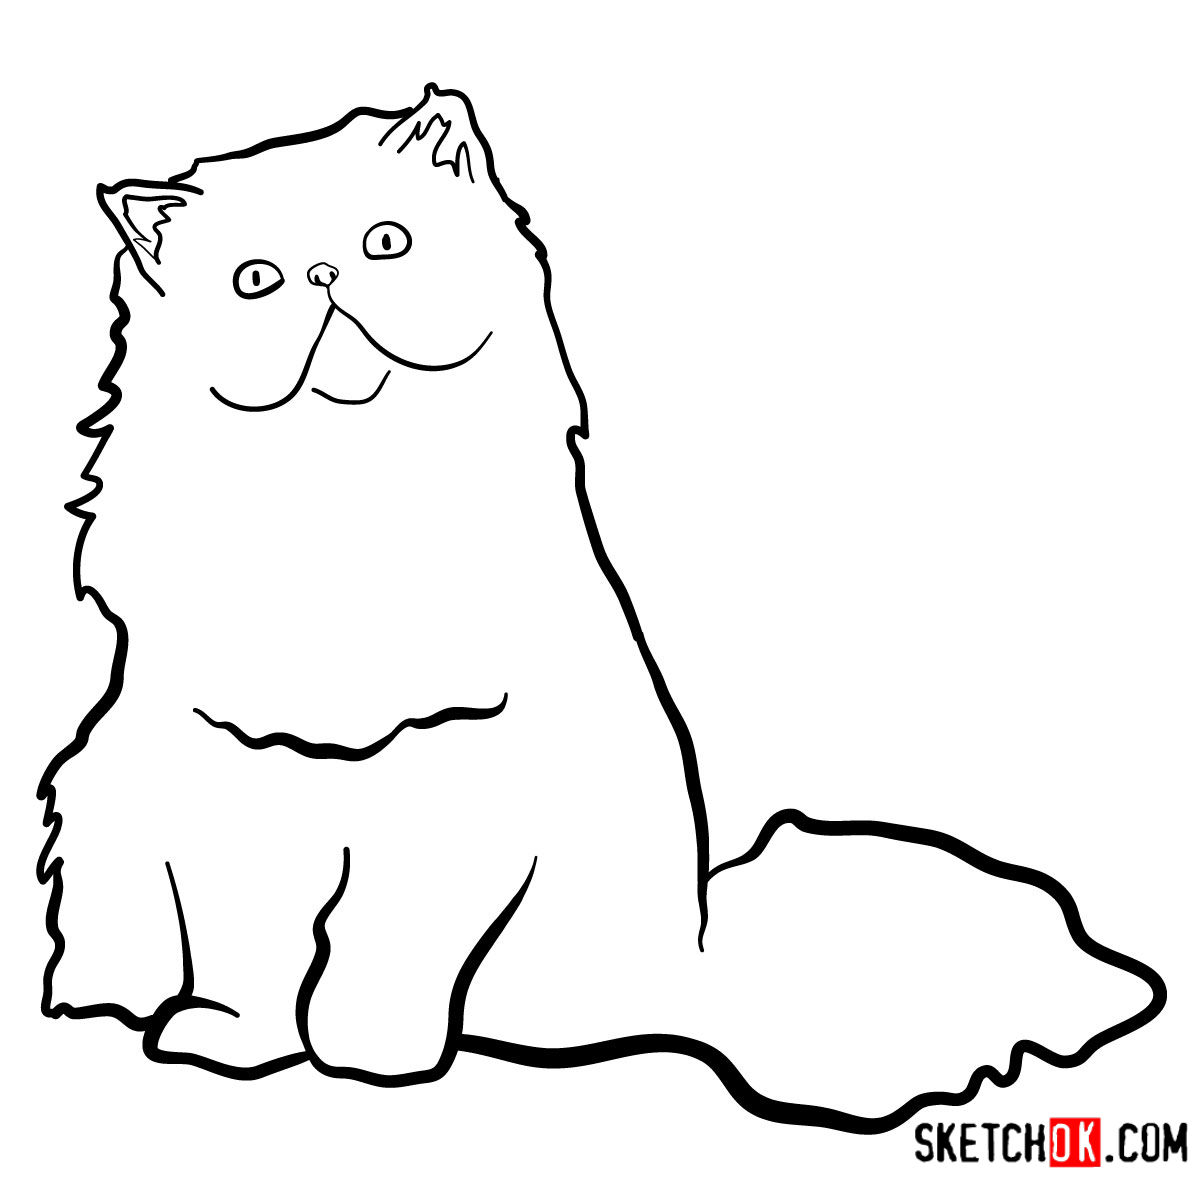 How to draw the Persian cat - step 08